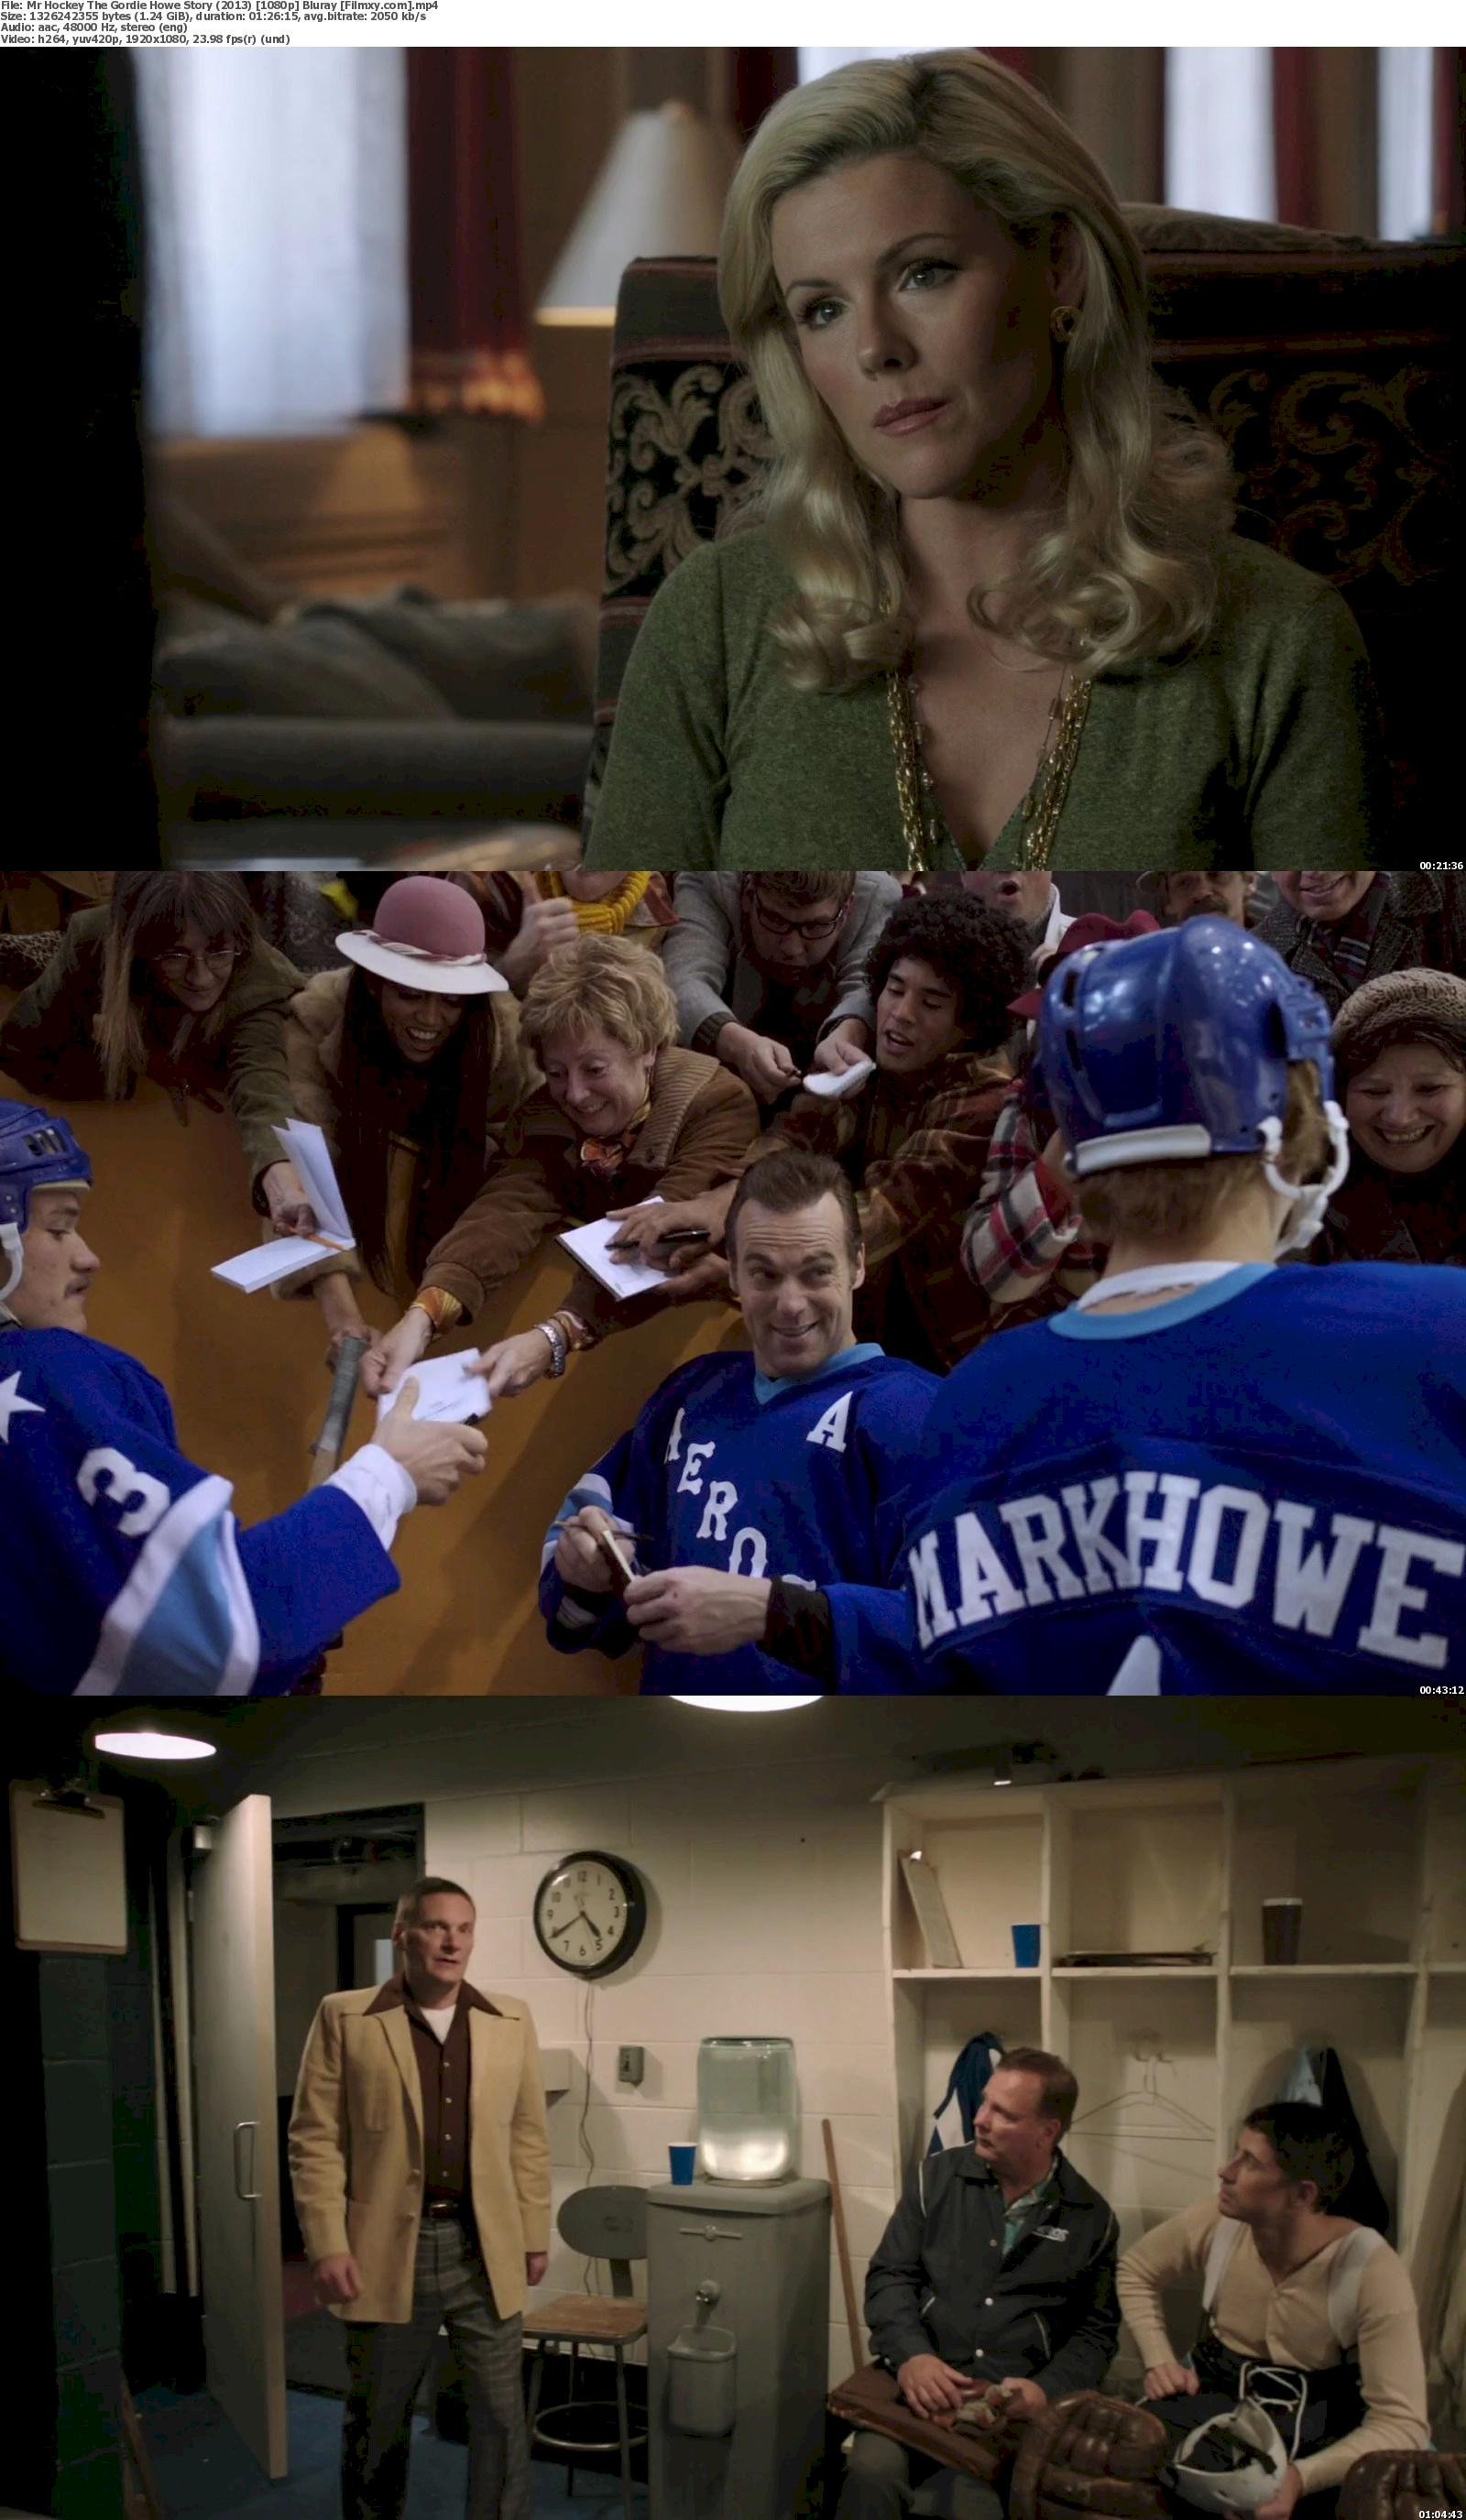 Mr. Hockey: The Gordie Howe Story (2013) 720p & 1080p Bluray Free Download 1080p Screenshot